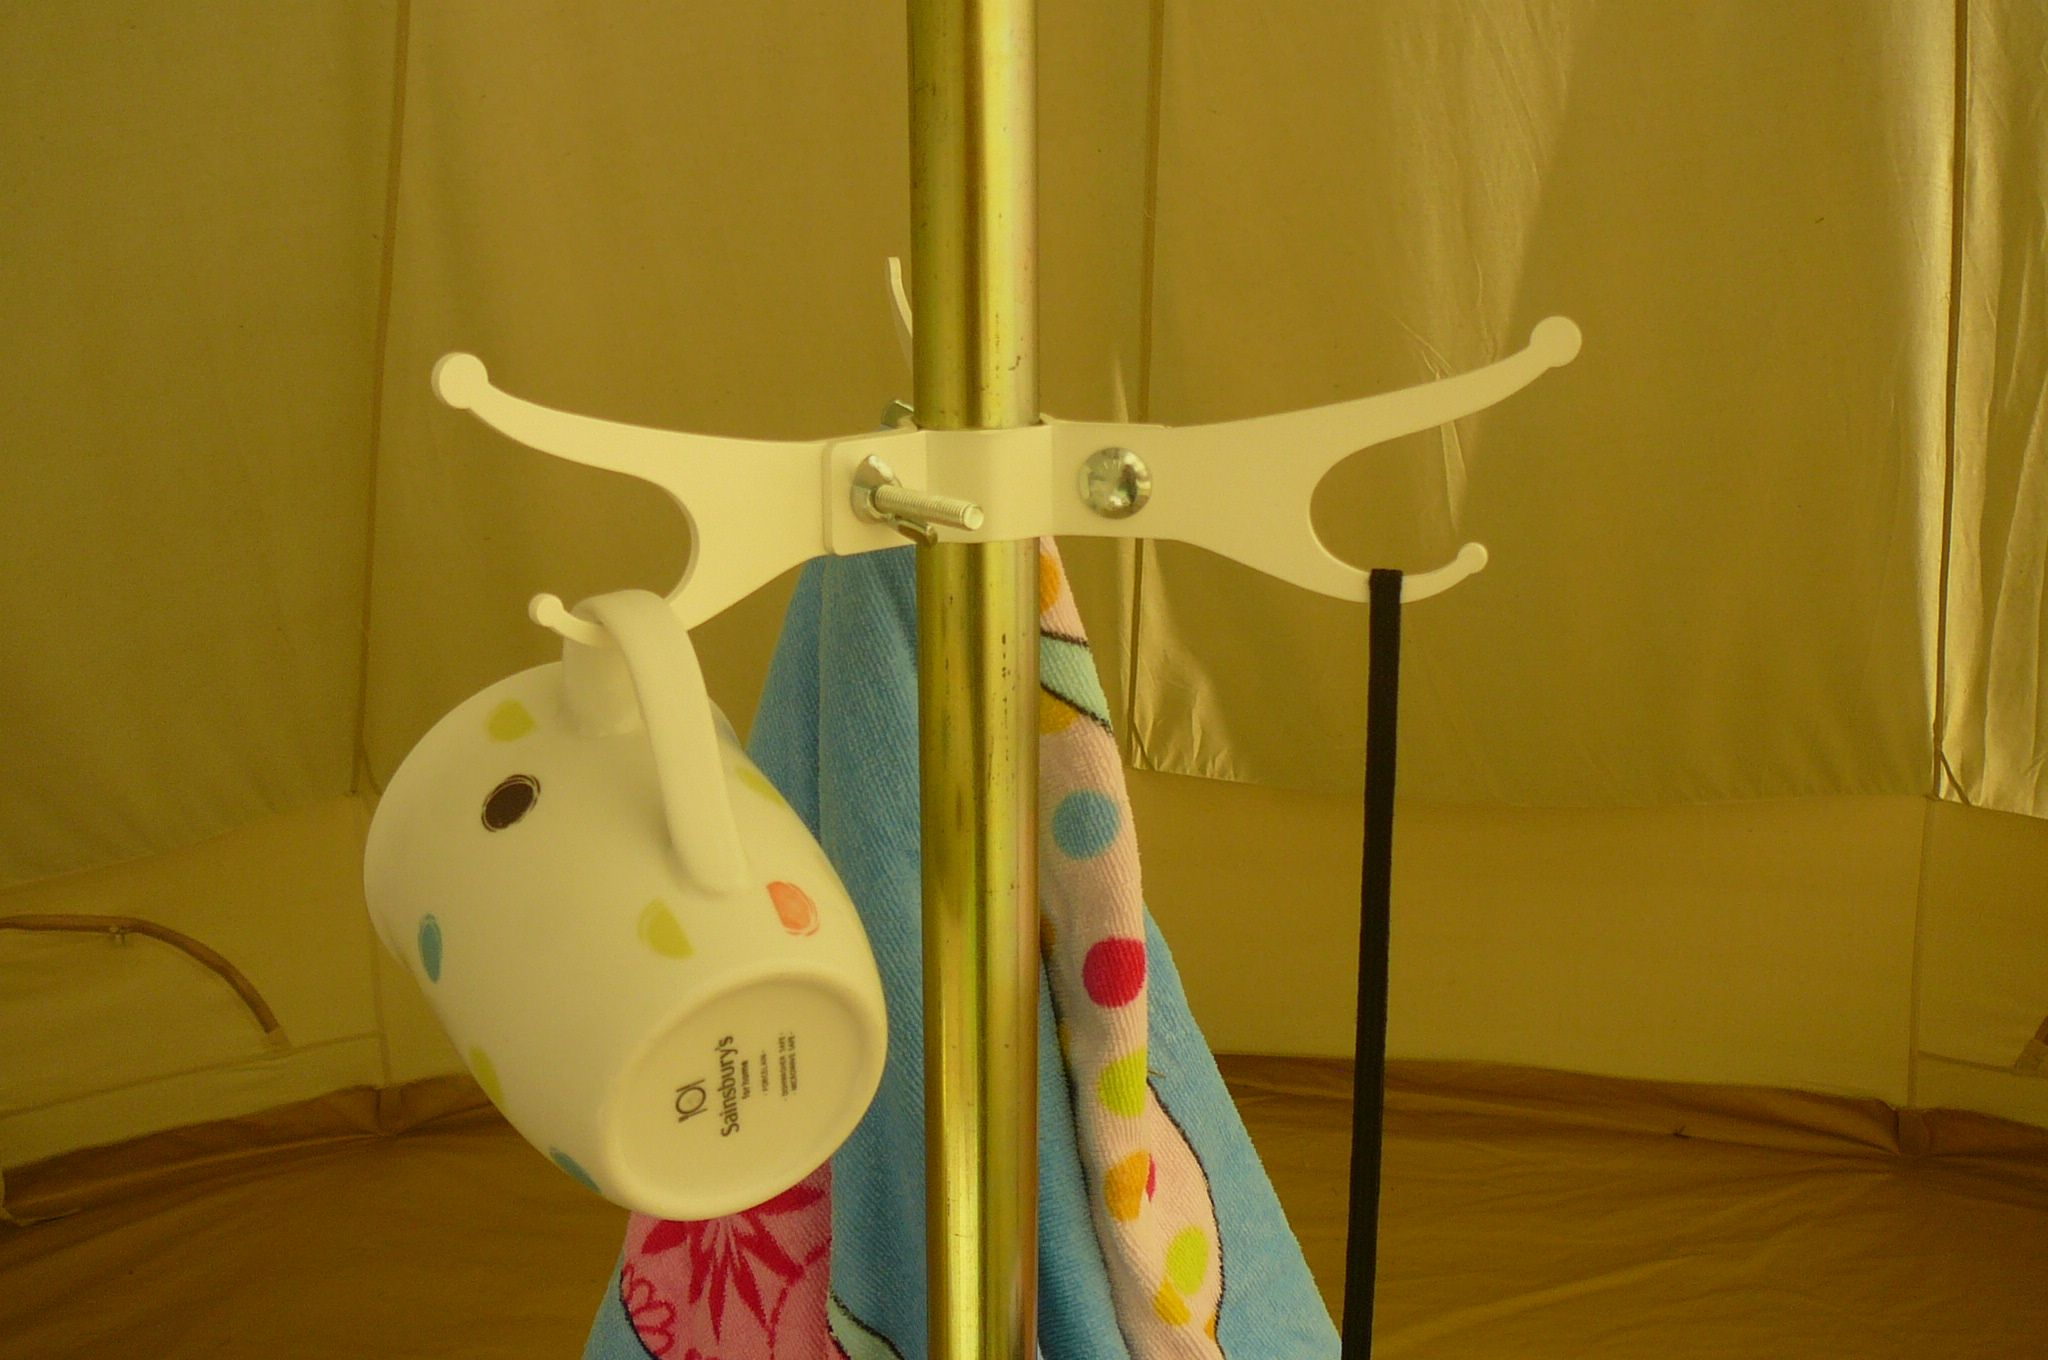 The Gl& Cl& - attach to Bell tent centre pole to hang useful items. & Unique Hooks for Bell Tents or any pole. | Hooks Hangers ...